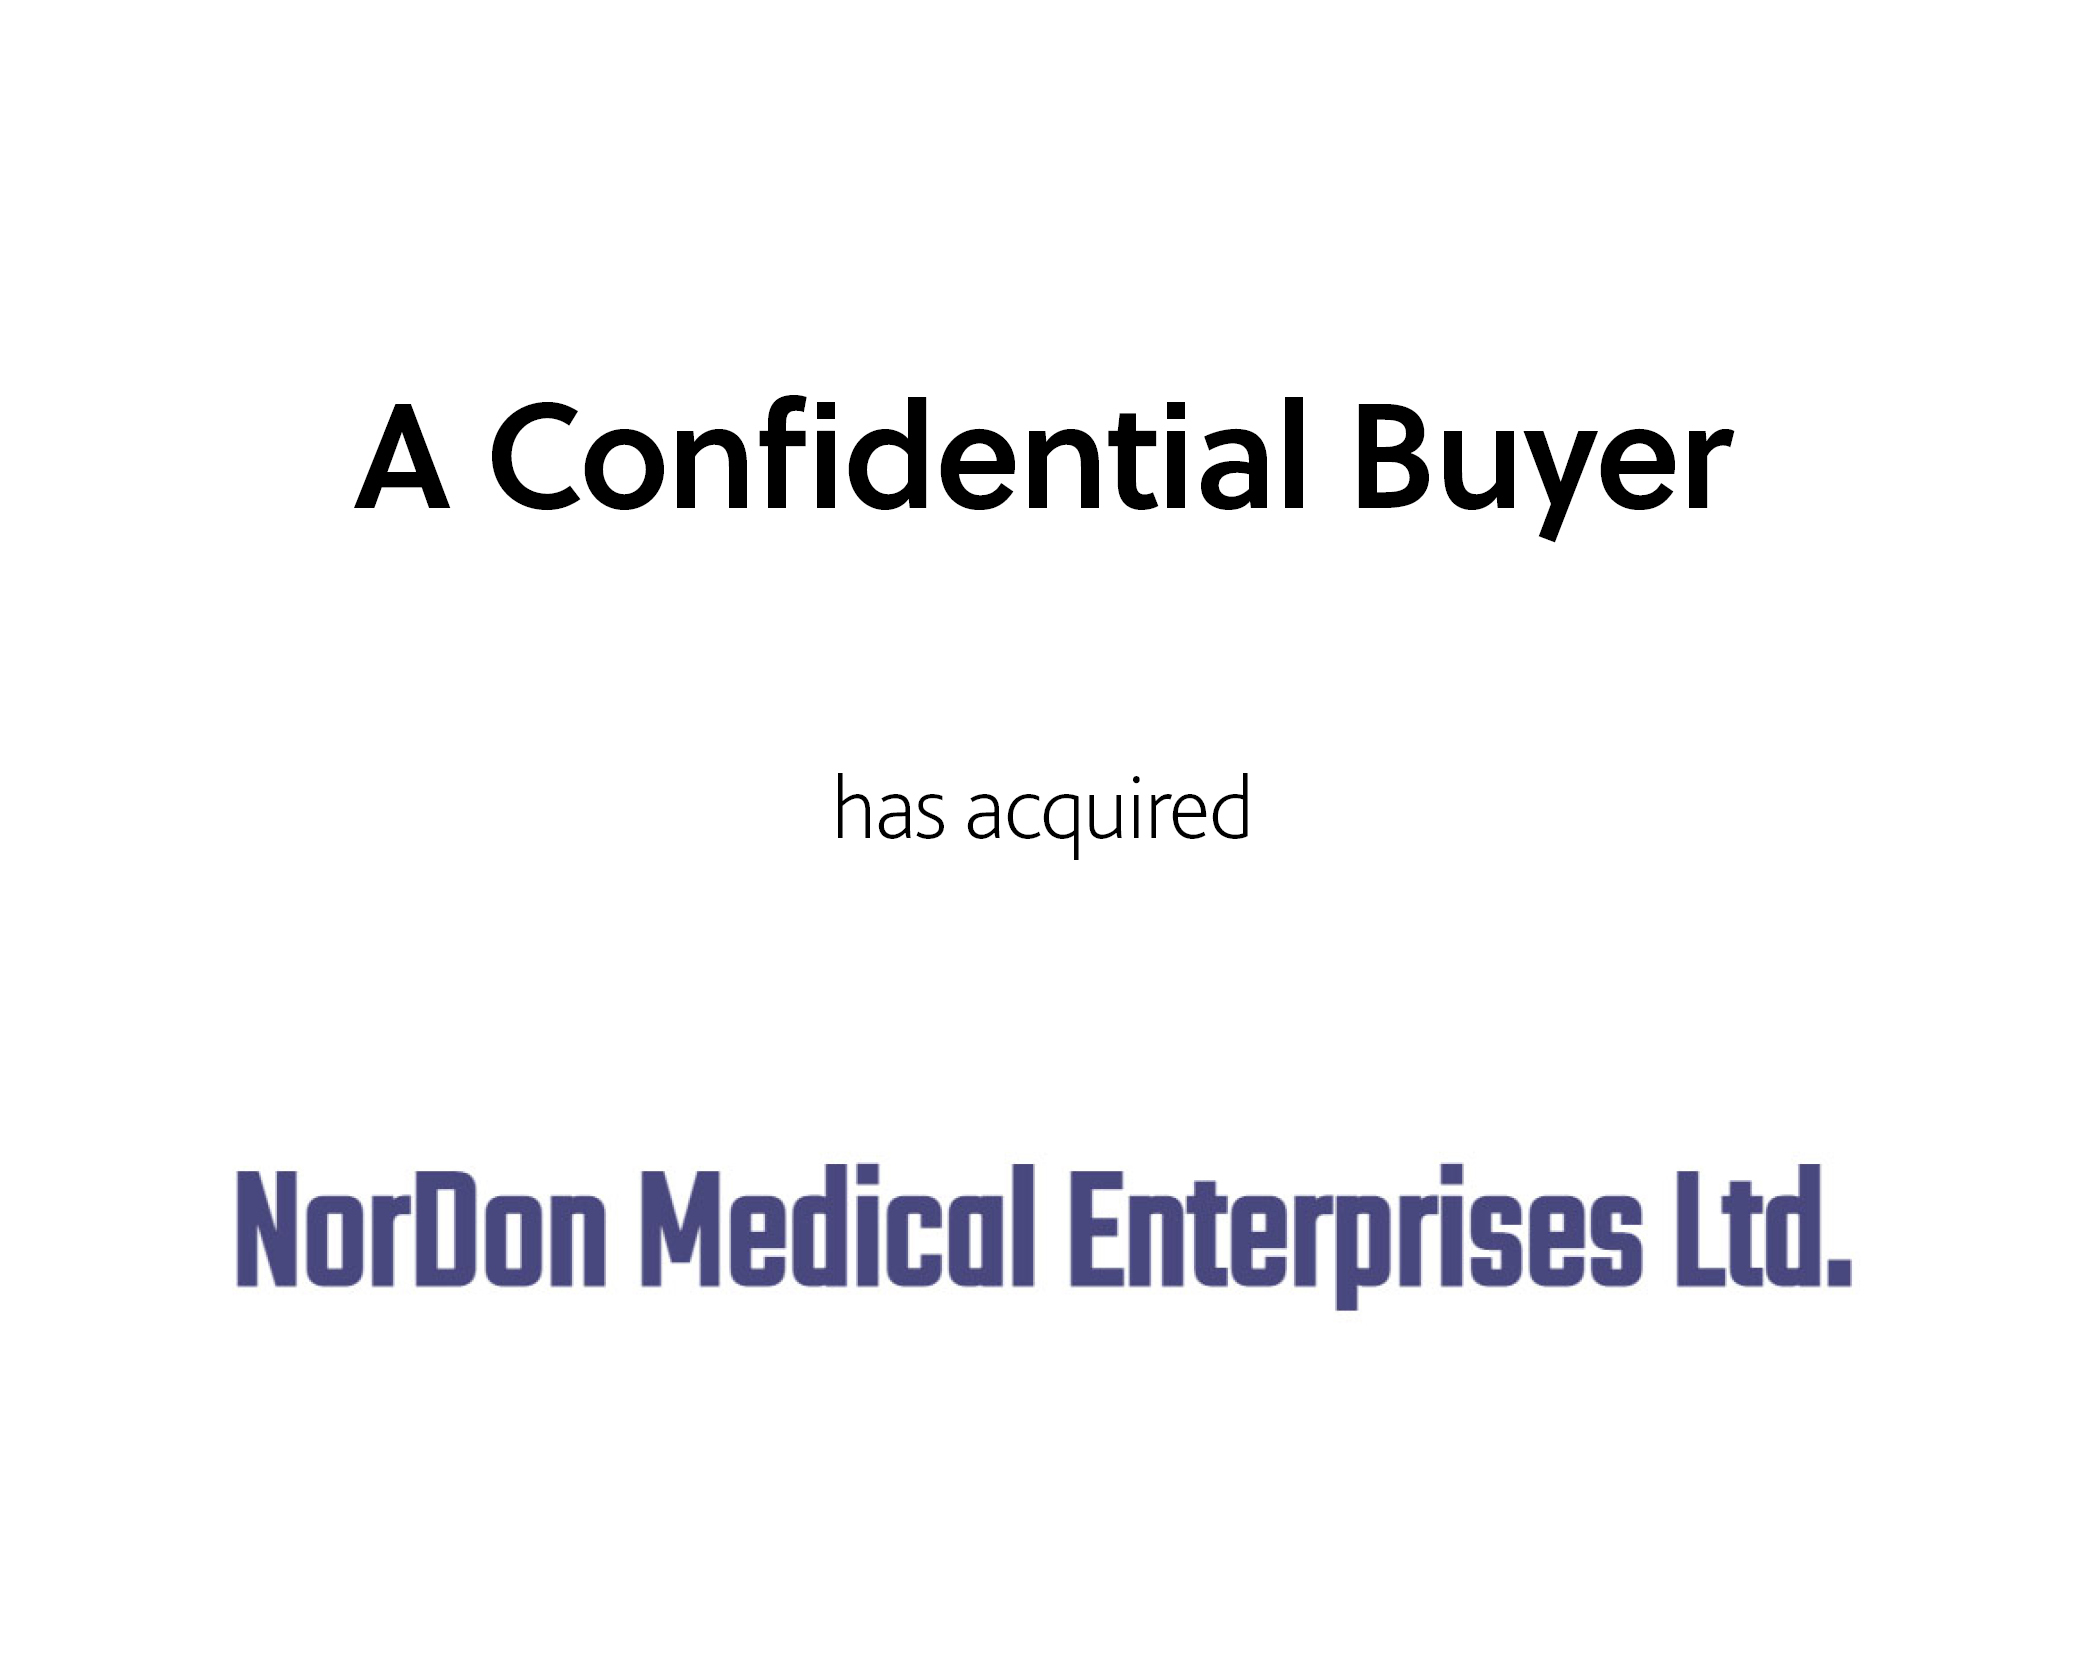 A confidential Buyer has acquired NorDon Medical Enterprises Ltd